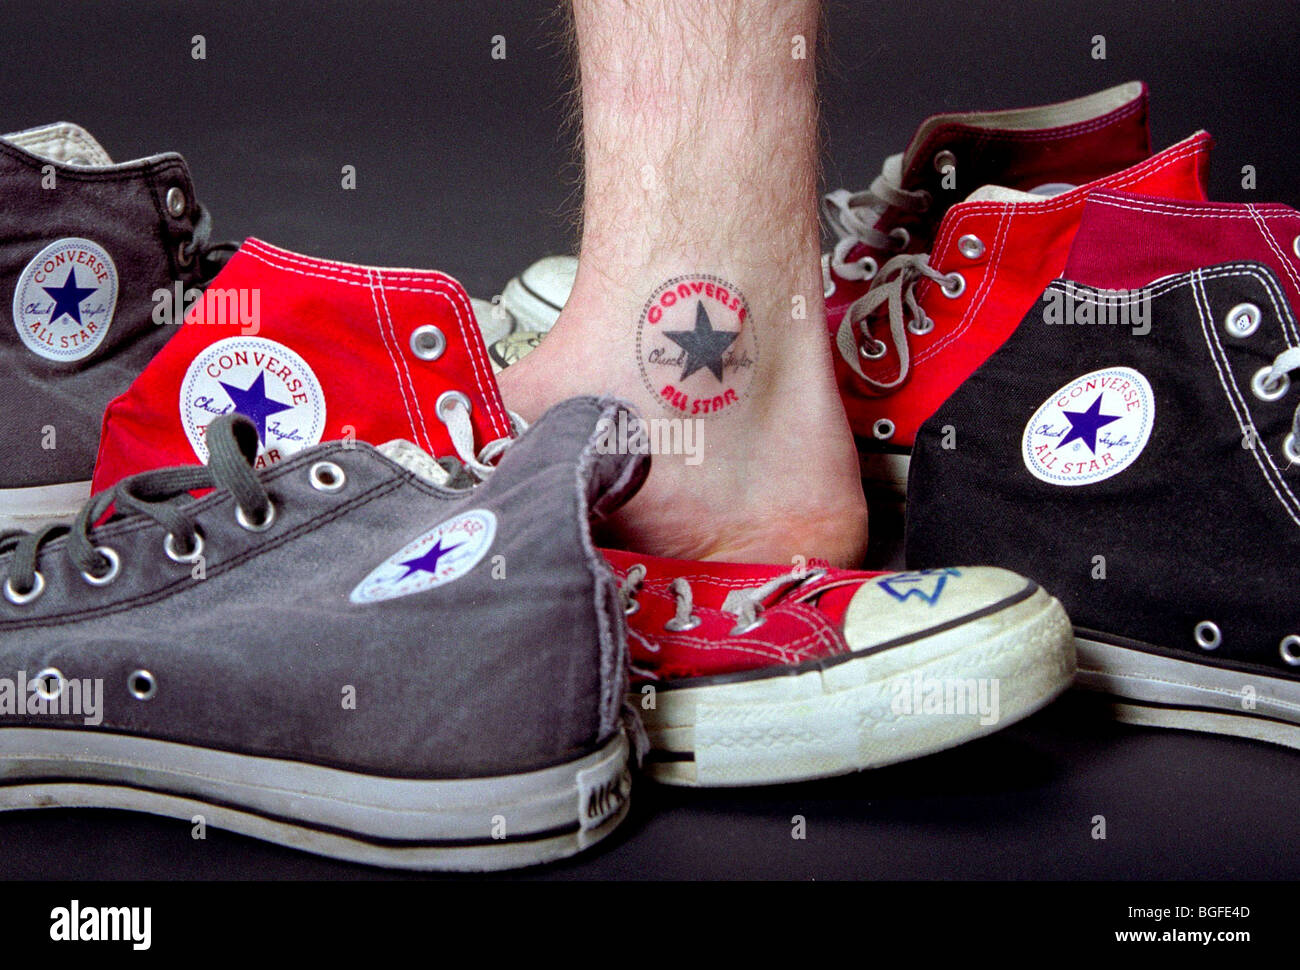 2ede026458ae A still life of Converse shoes and a food with a Converse tattoo. - Stock